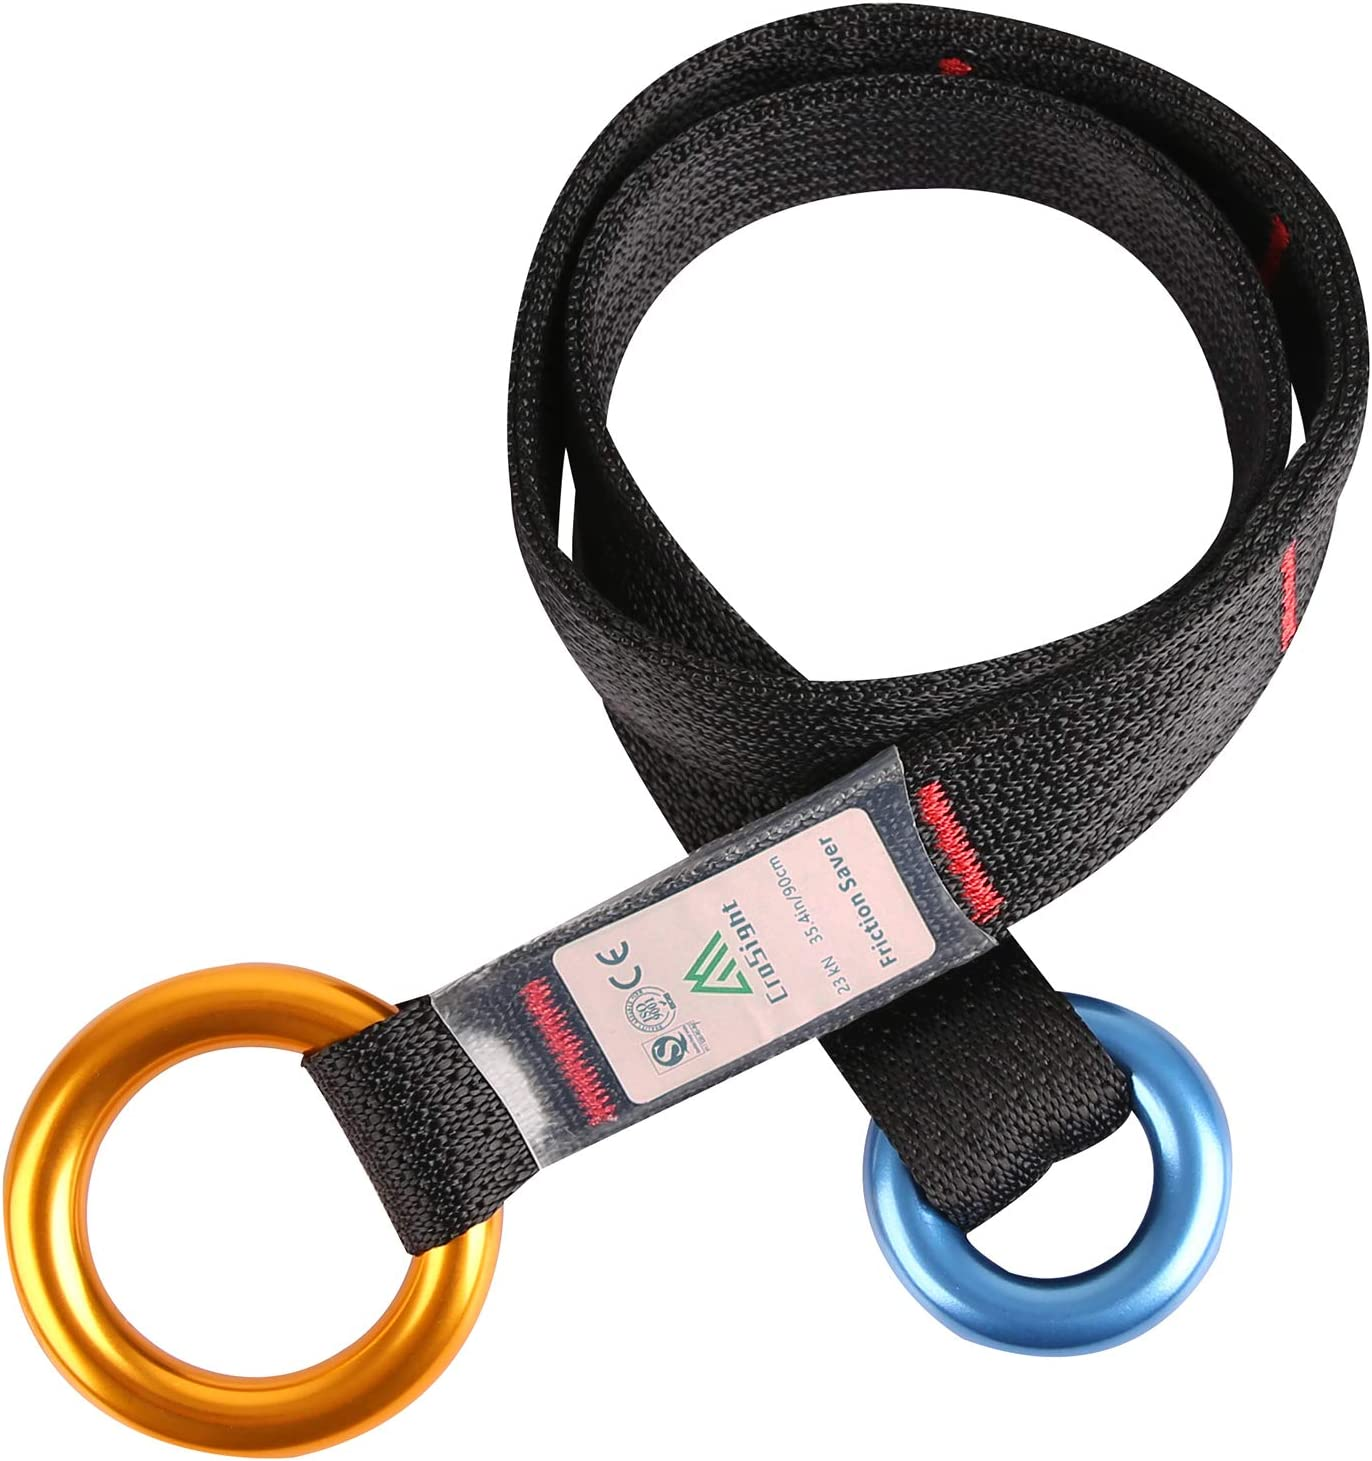 Arborist Friction Saver Tree Climbing Cambium Saver Retrievable Anchor Loop Belt Sling CE Certified 23KN 47.2 inch//35.4 inch